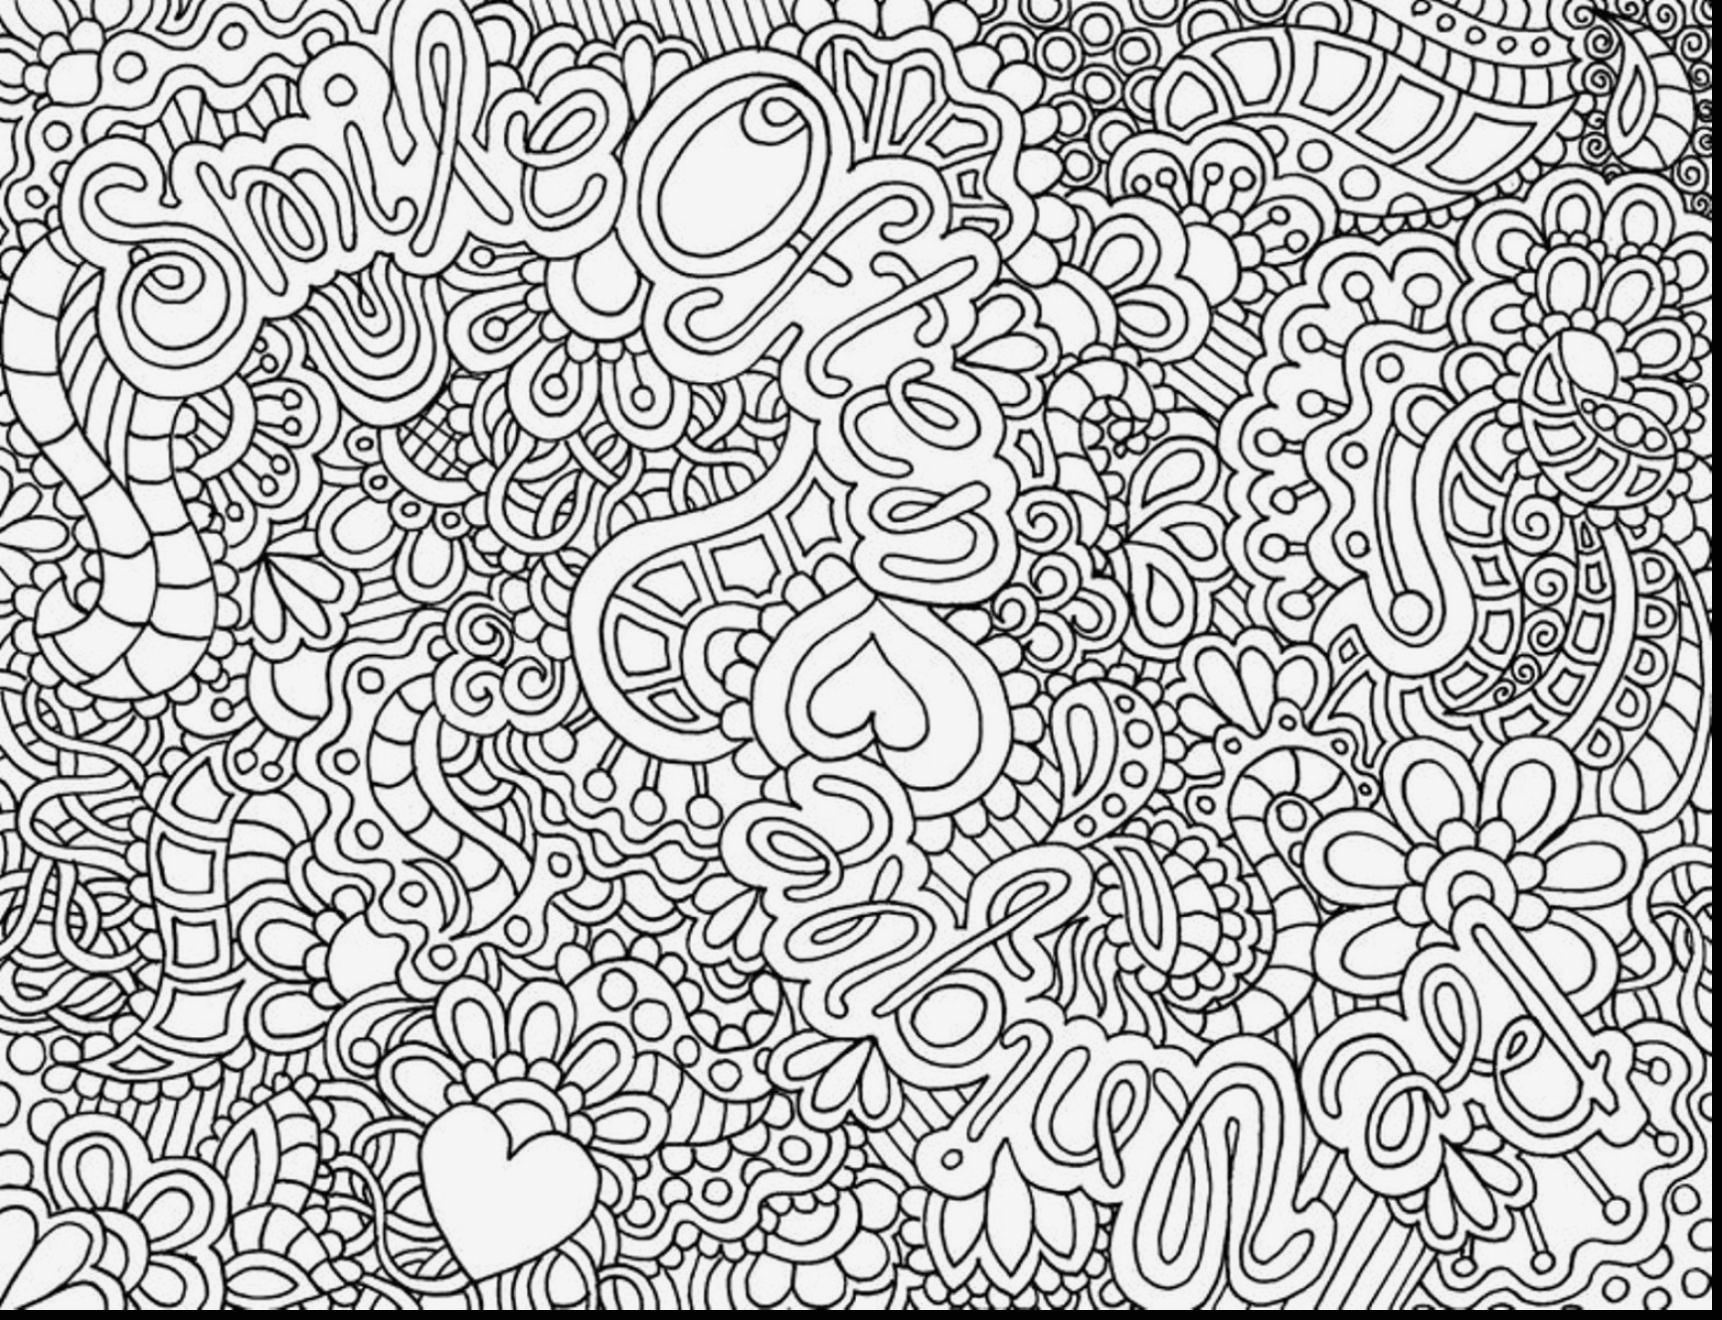 460 Top Coloring Pages Pdf Free For Free